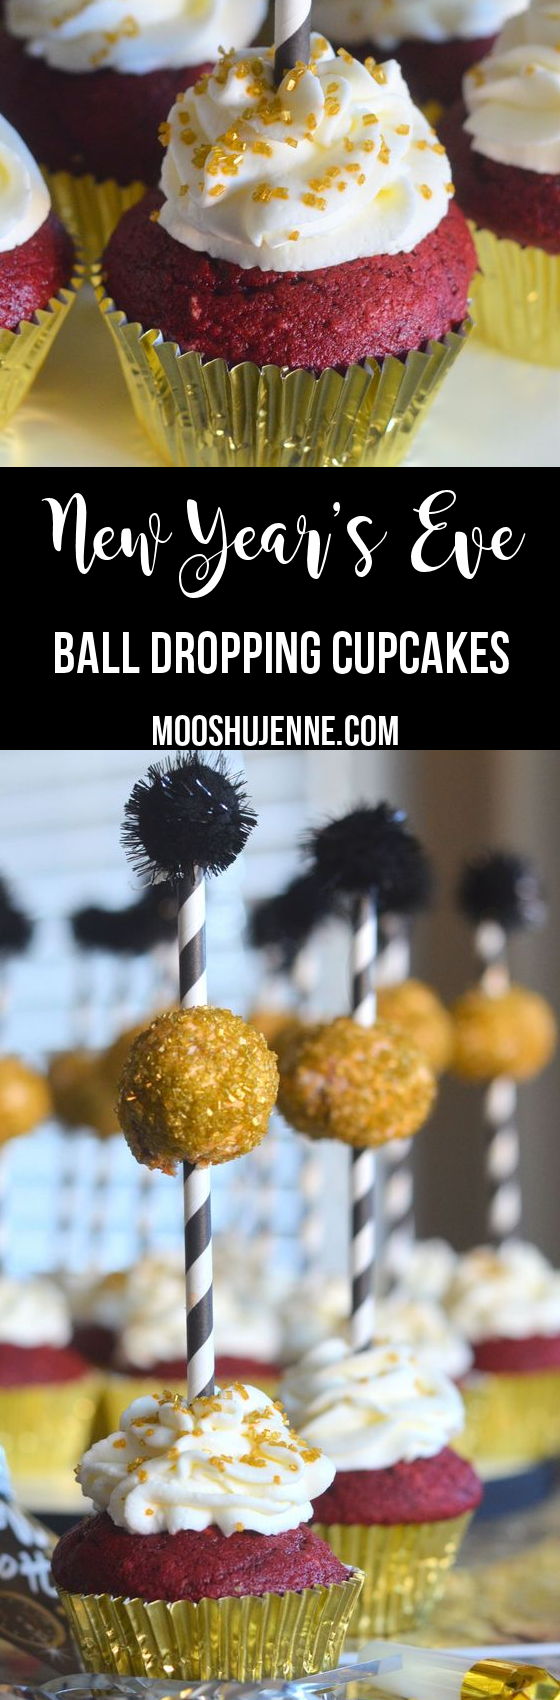 New year's eve ball dropping cupcakes | Recipe | New years ...